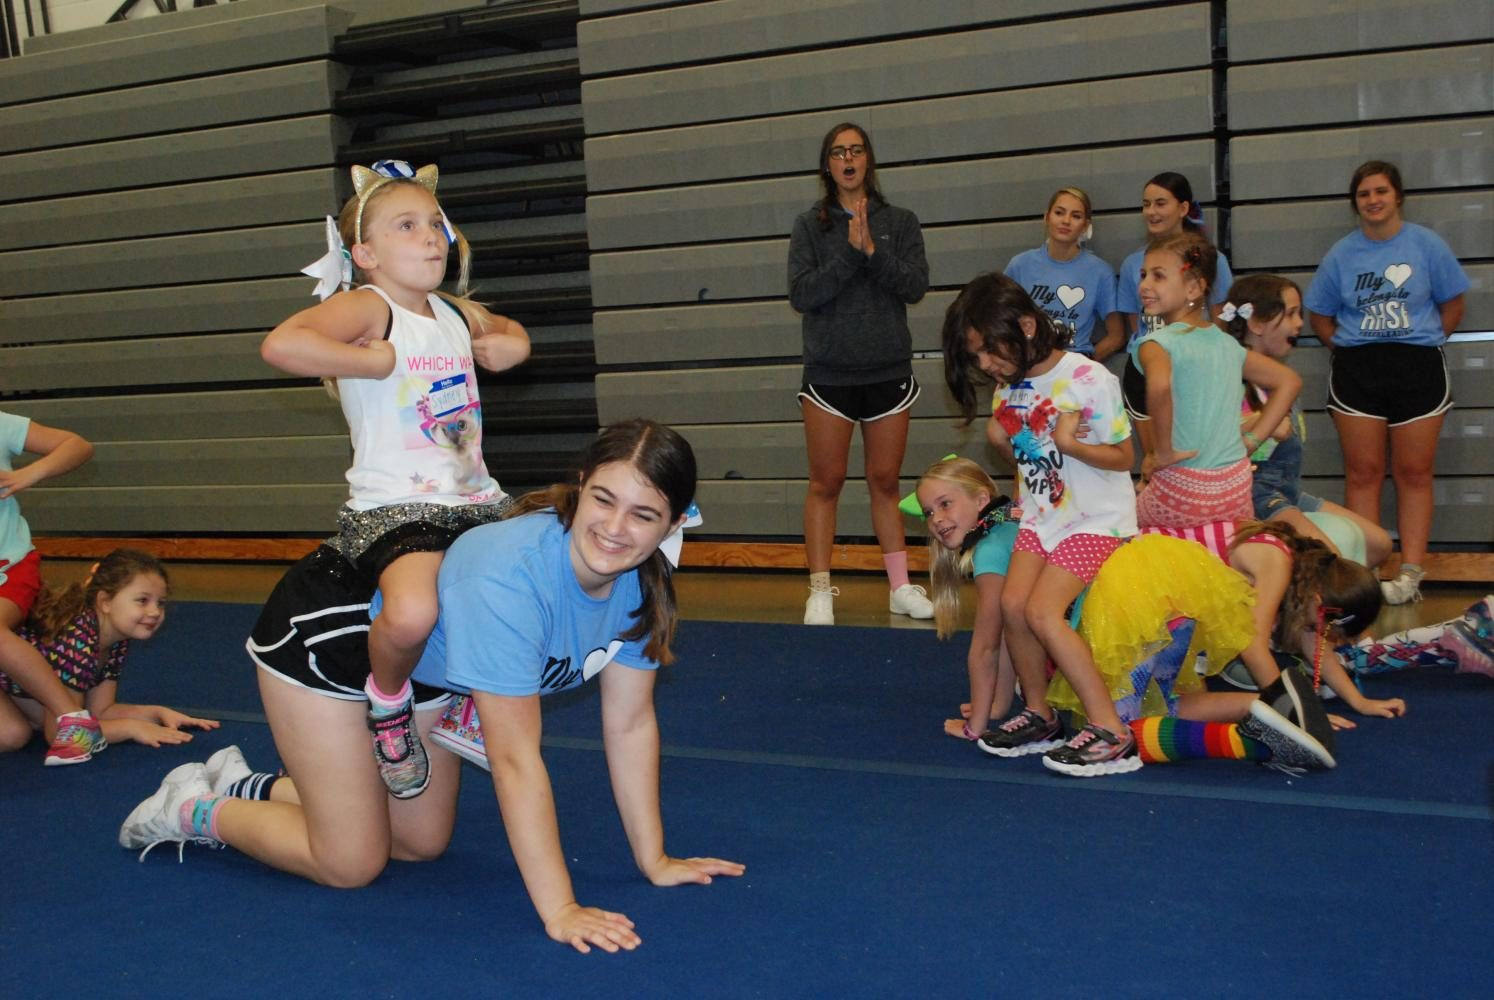 Sophomore+Annie+Tromboli+hangs+out+with+some+young+cheerleaders+during+break.+She+volunteered+this+summer+at+Hagerty%27s+Youth+Cheer+Camp.